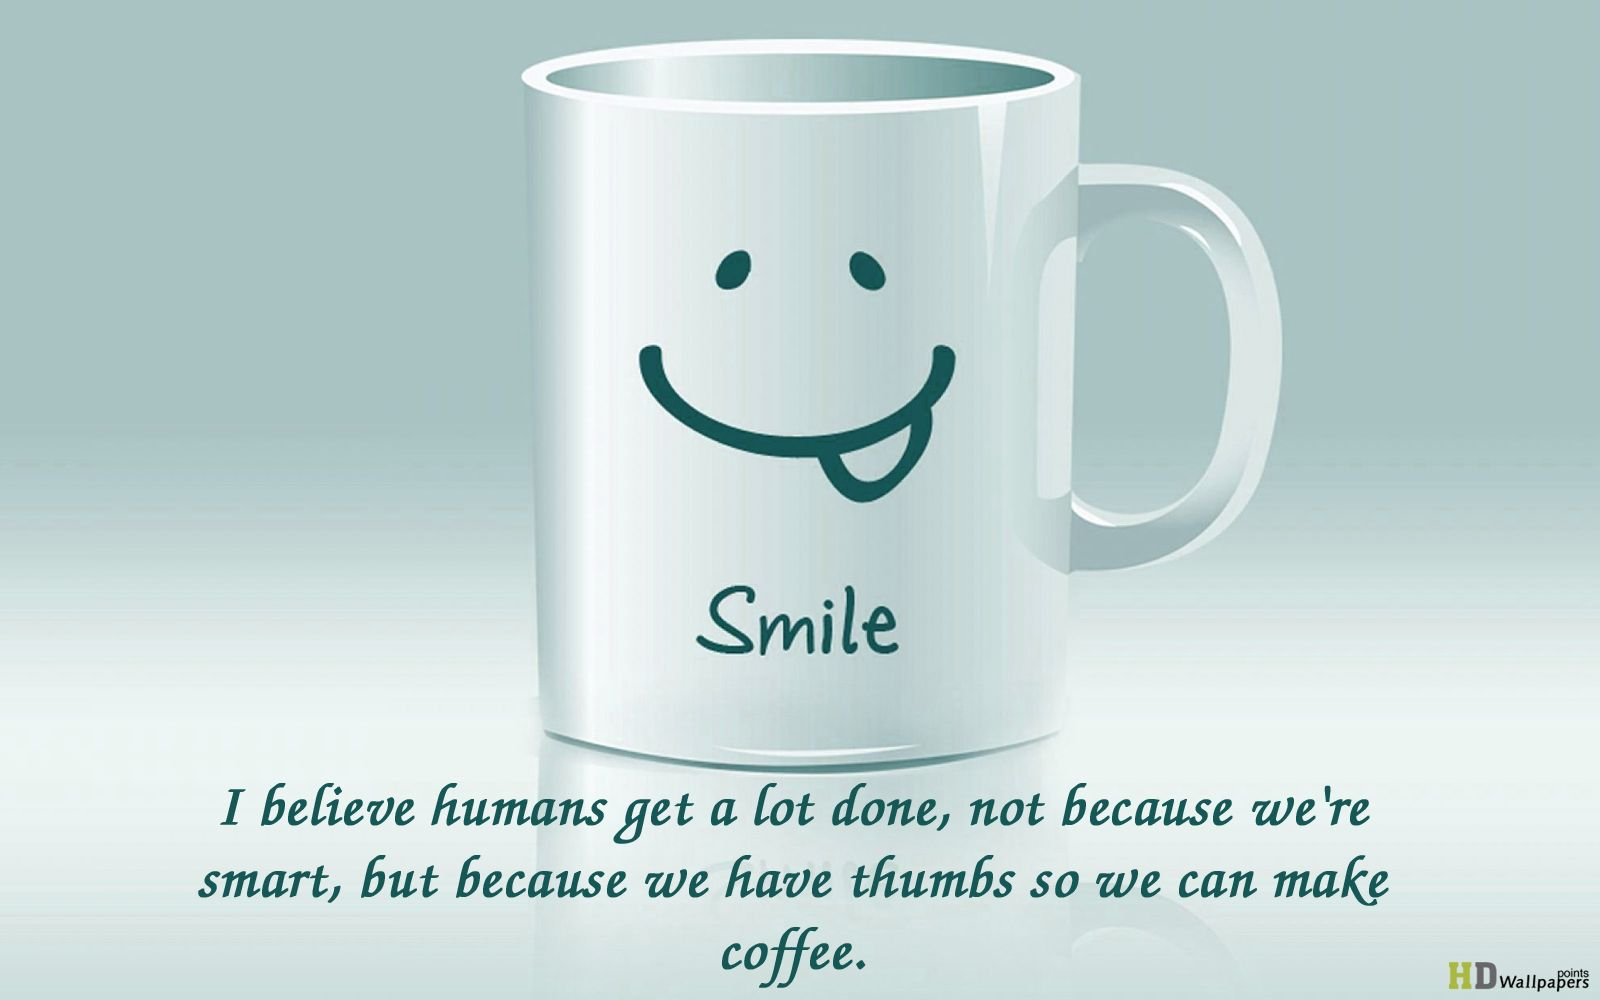 Morning Coffee Quotes Funny Smiley Cup Quotes Morning